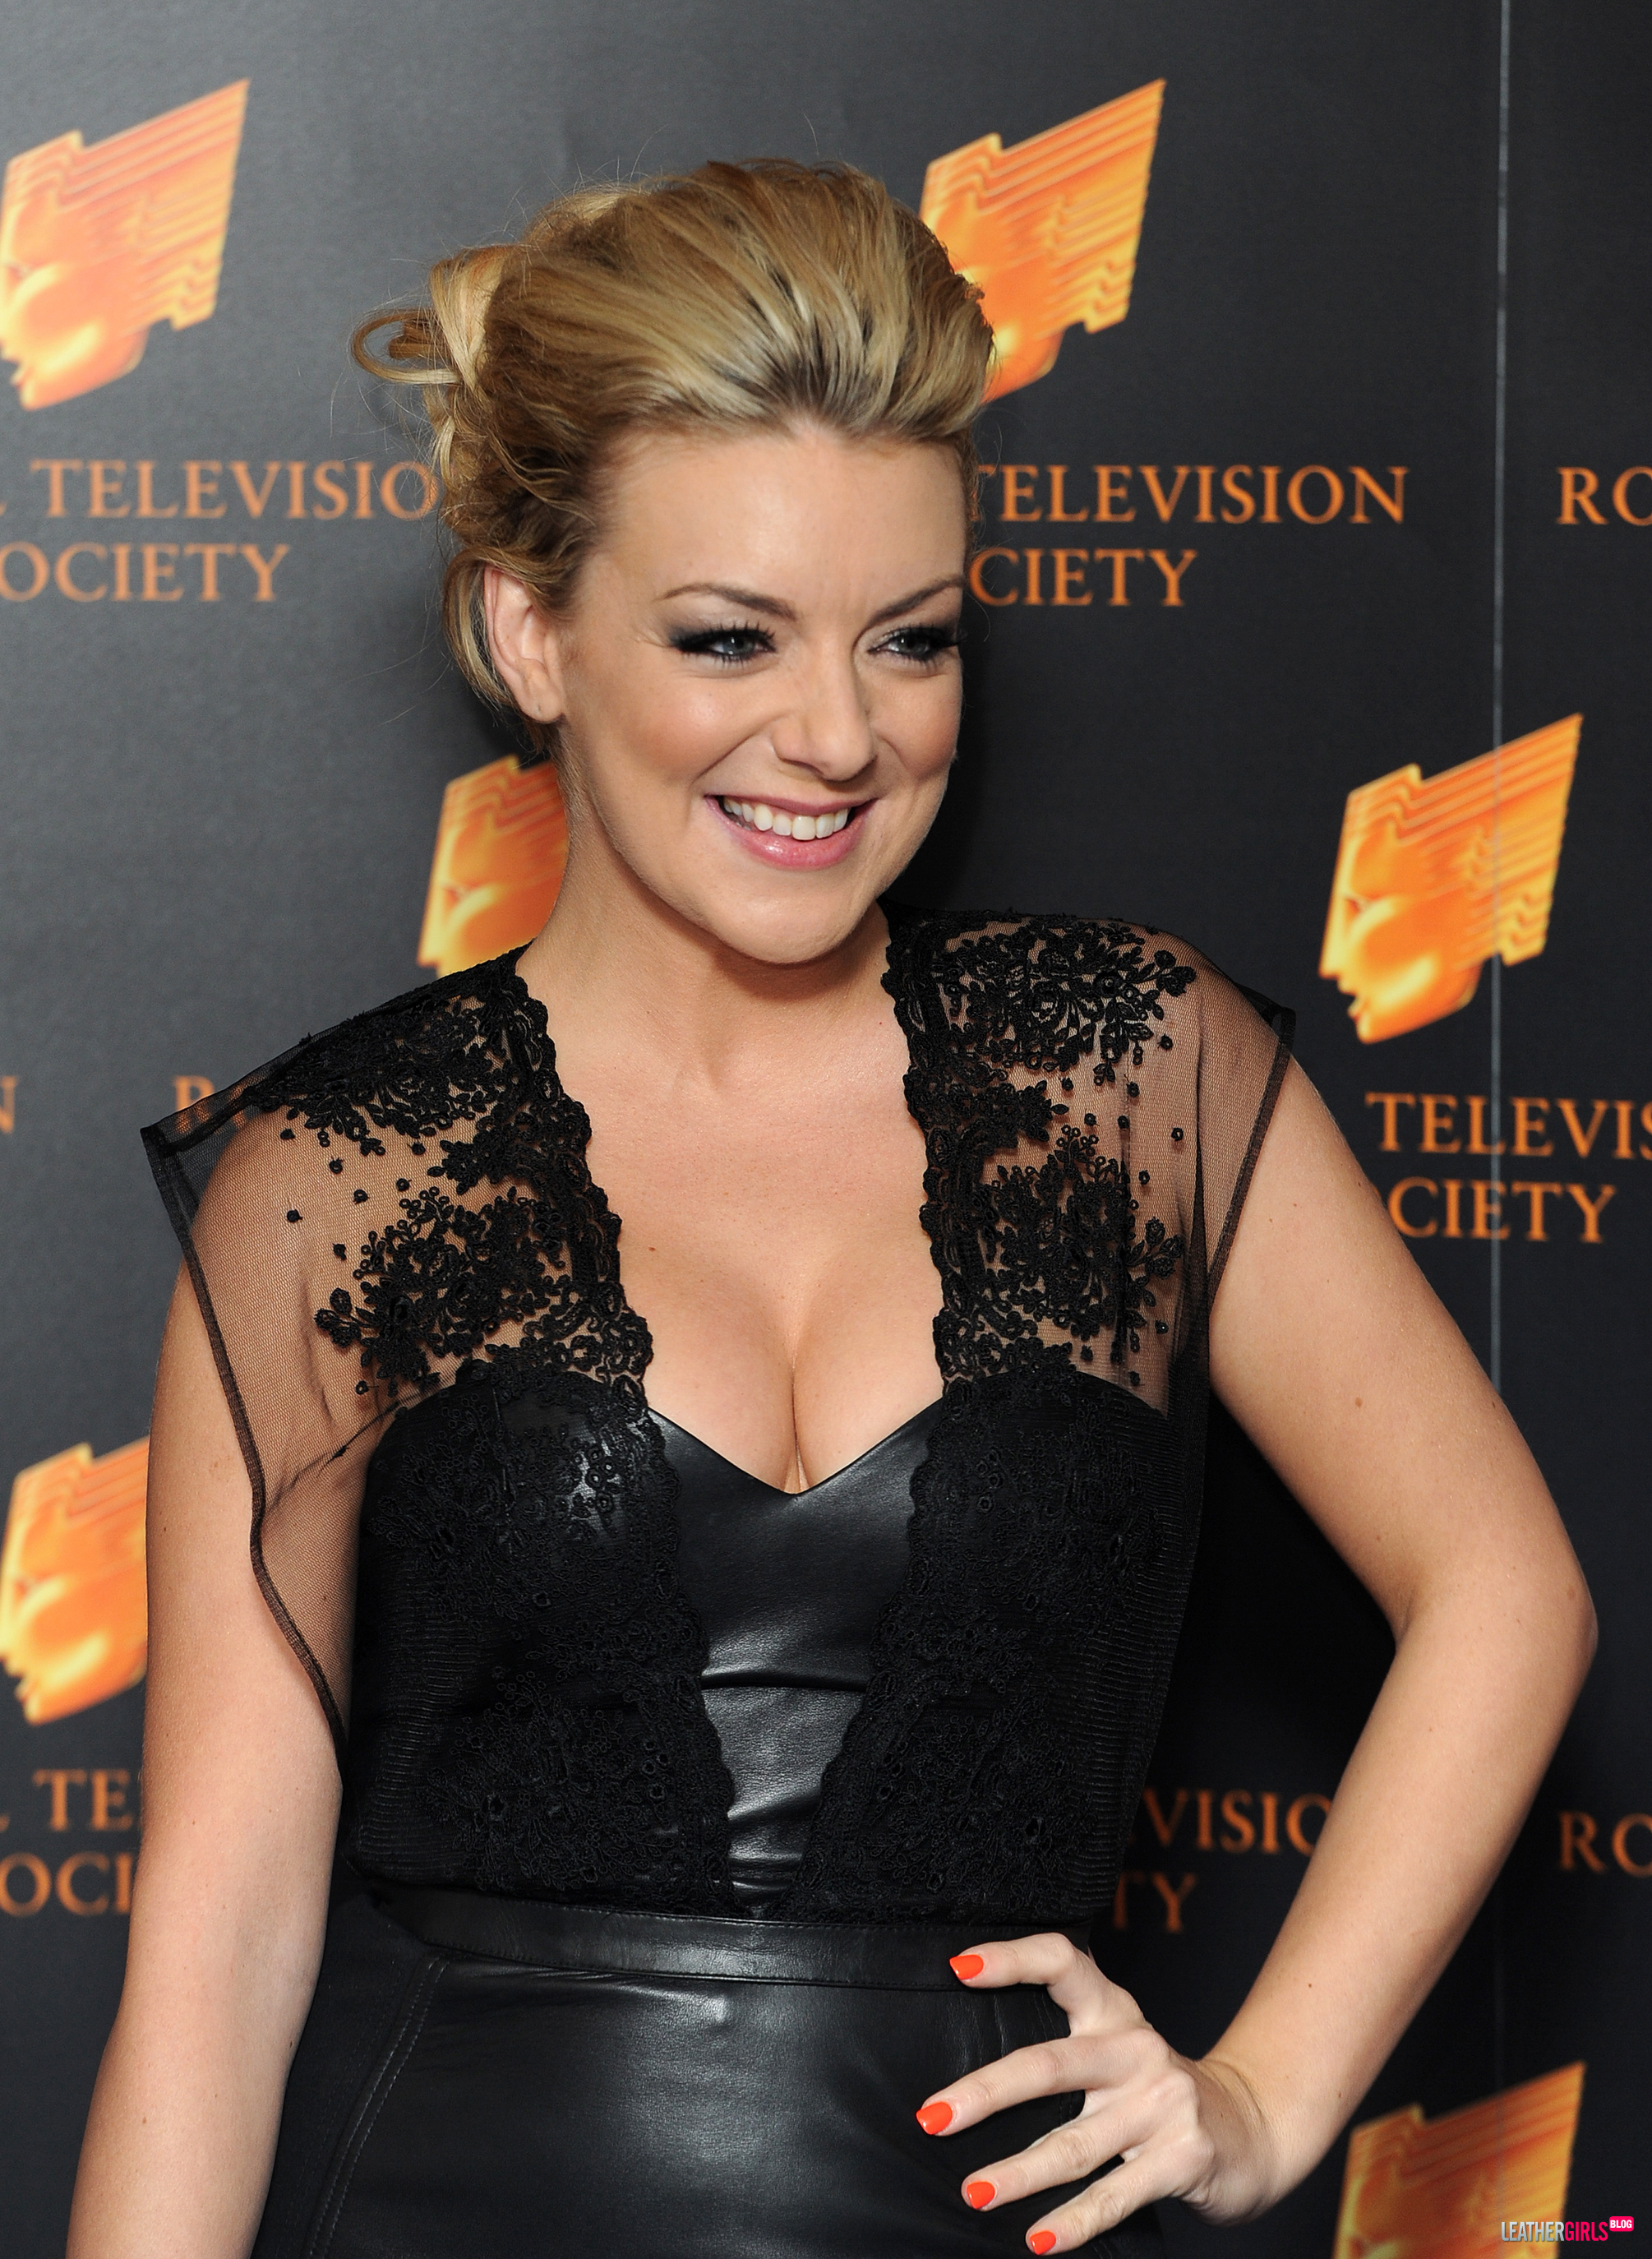 377677410_Sheridan_Smith__RTS_Programme_Awards___19_03_13_Adds008_122_713lo.jpg